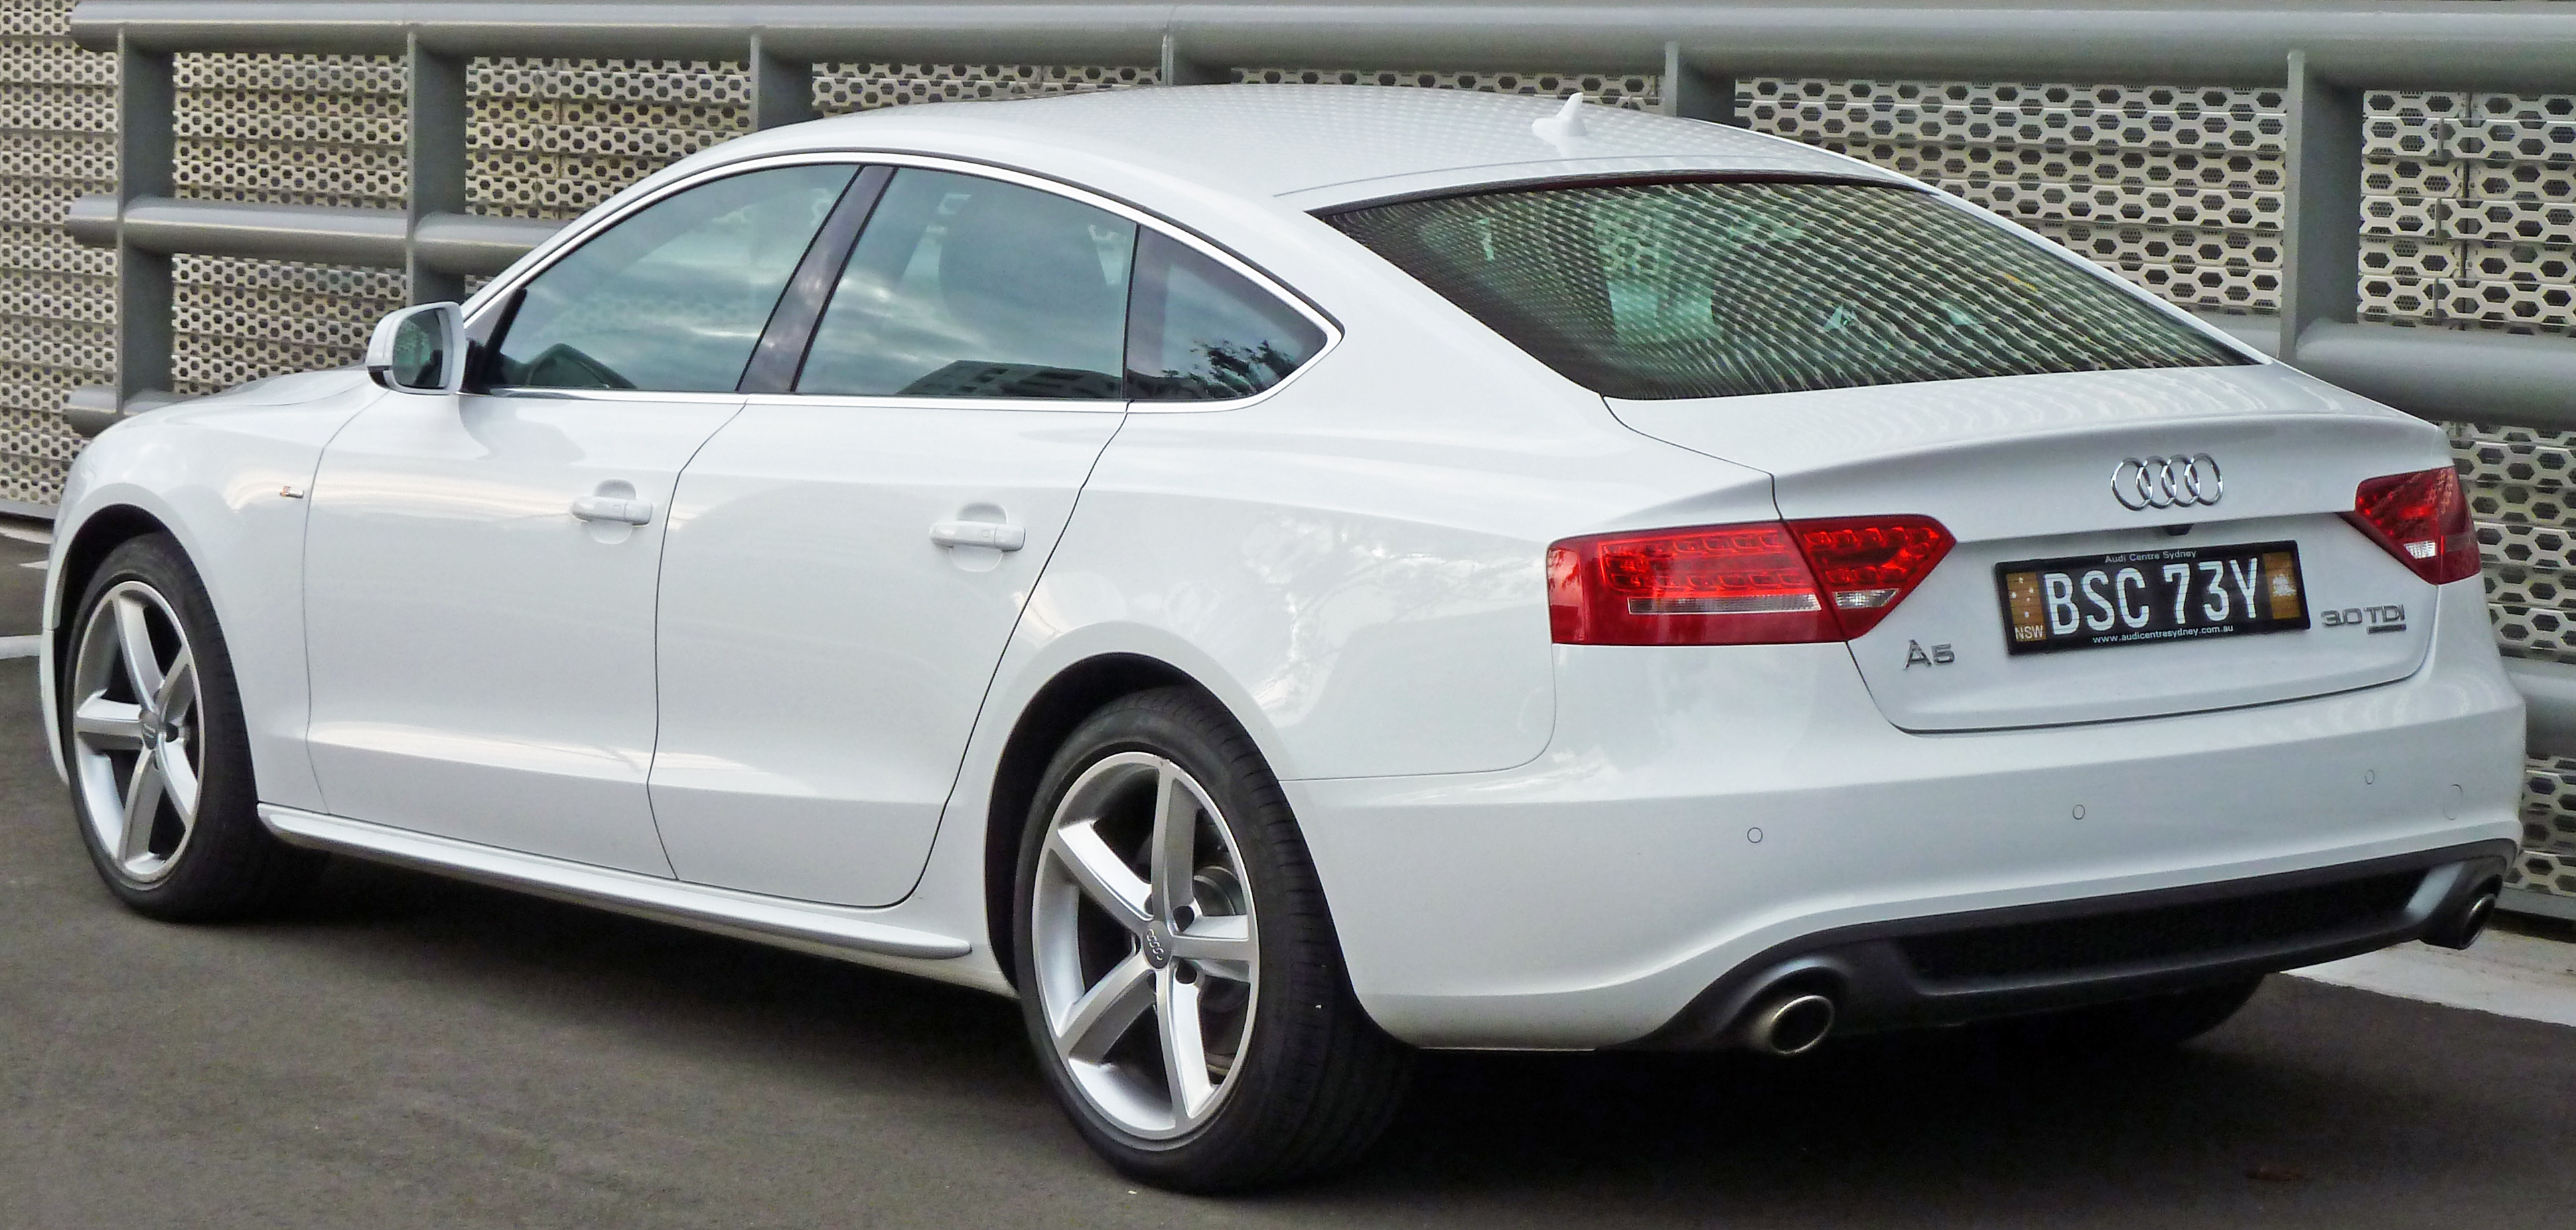 Audi A5 2016 Exterior Rear Side View